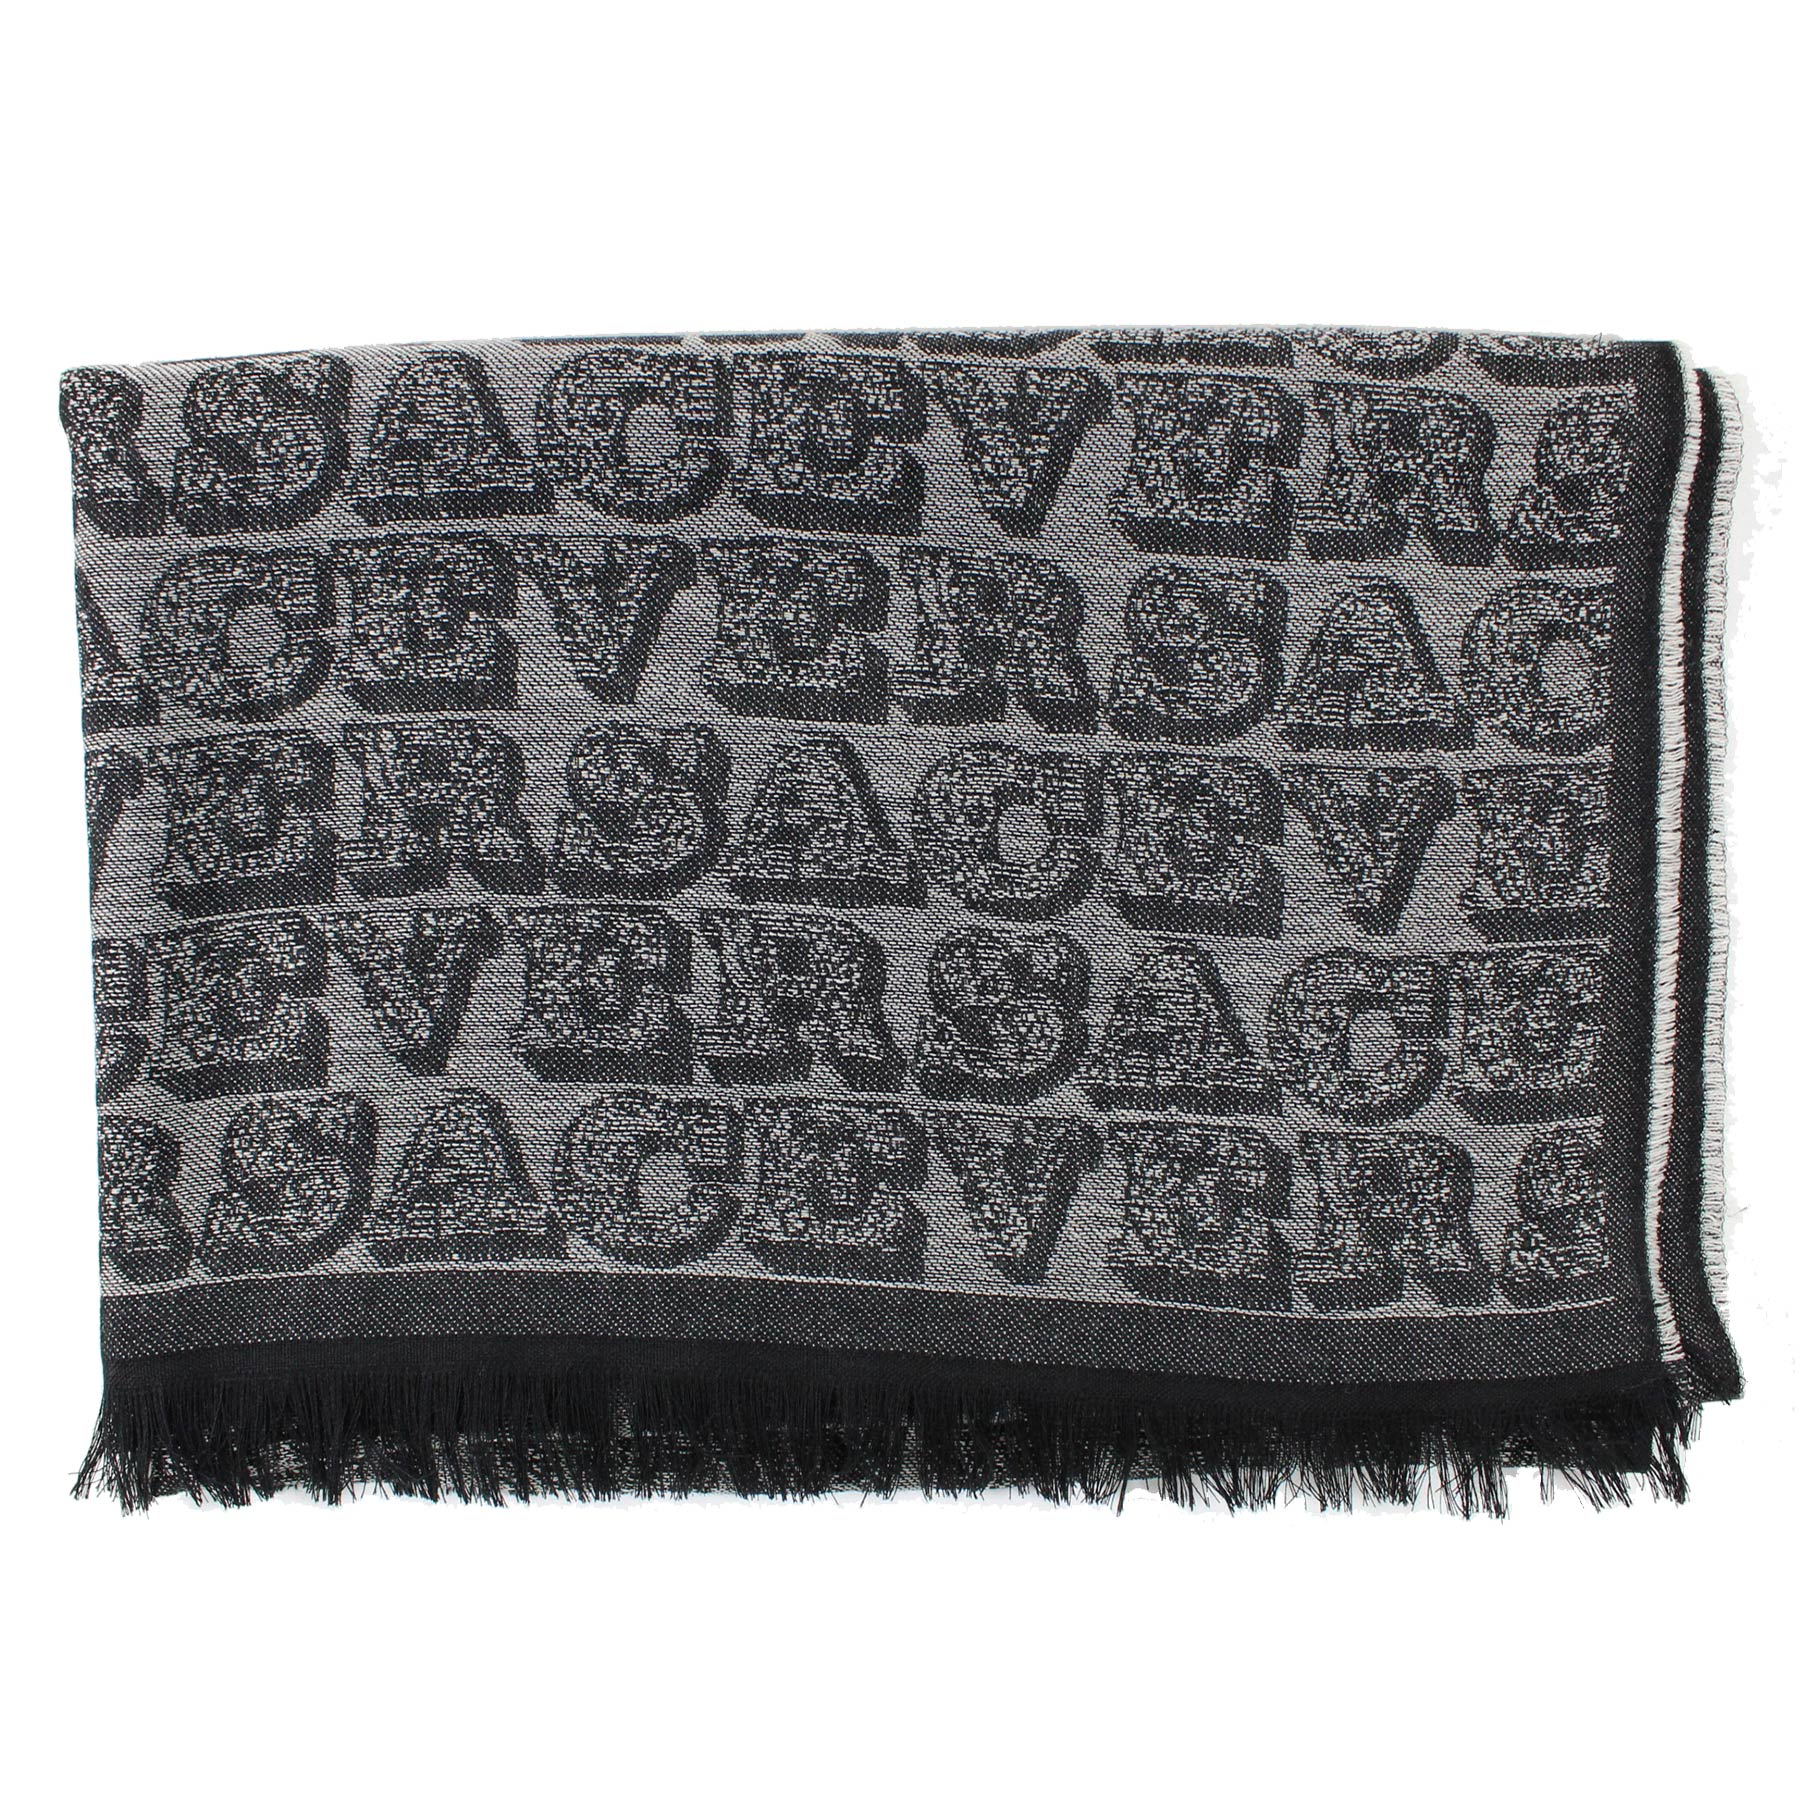 Versace Scarf Black Gray Versace Logo - Large Wool Shawl